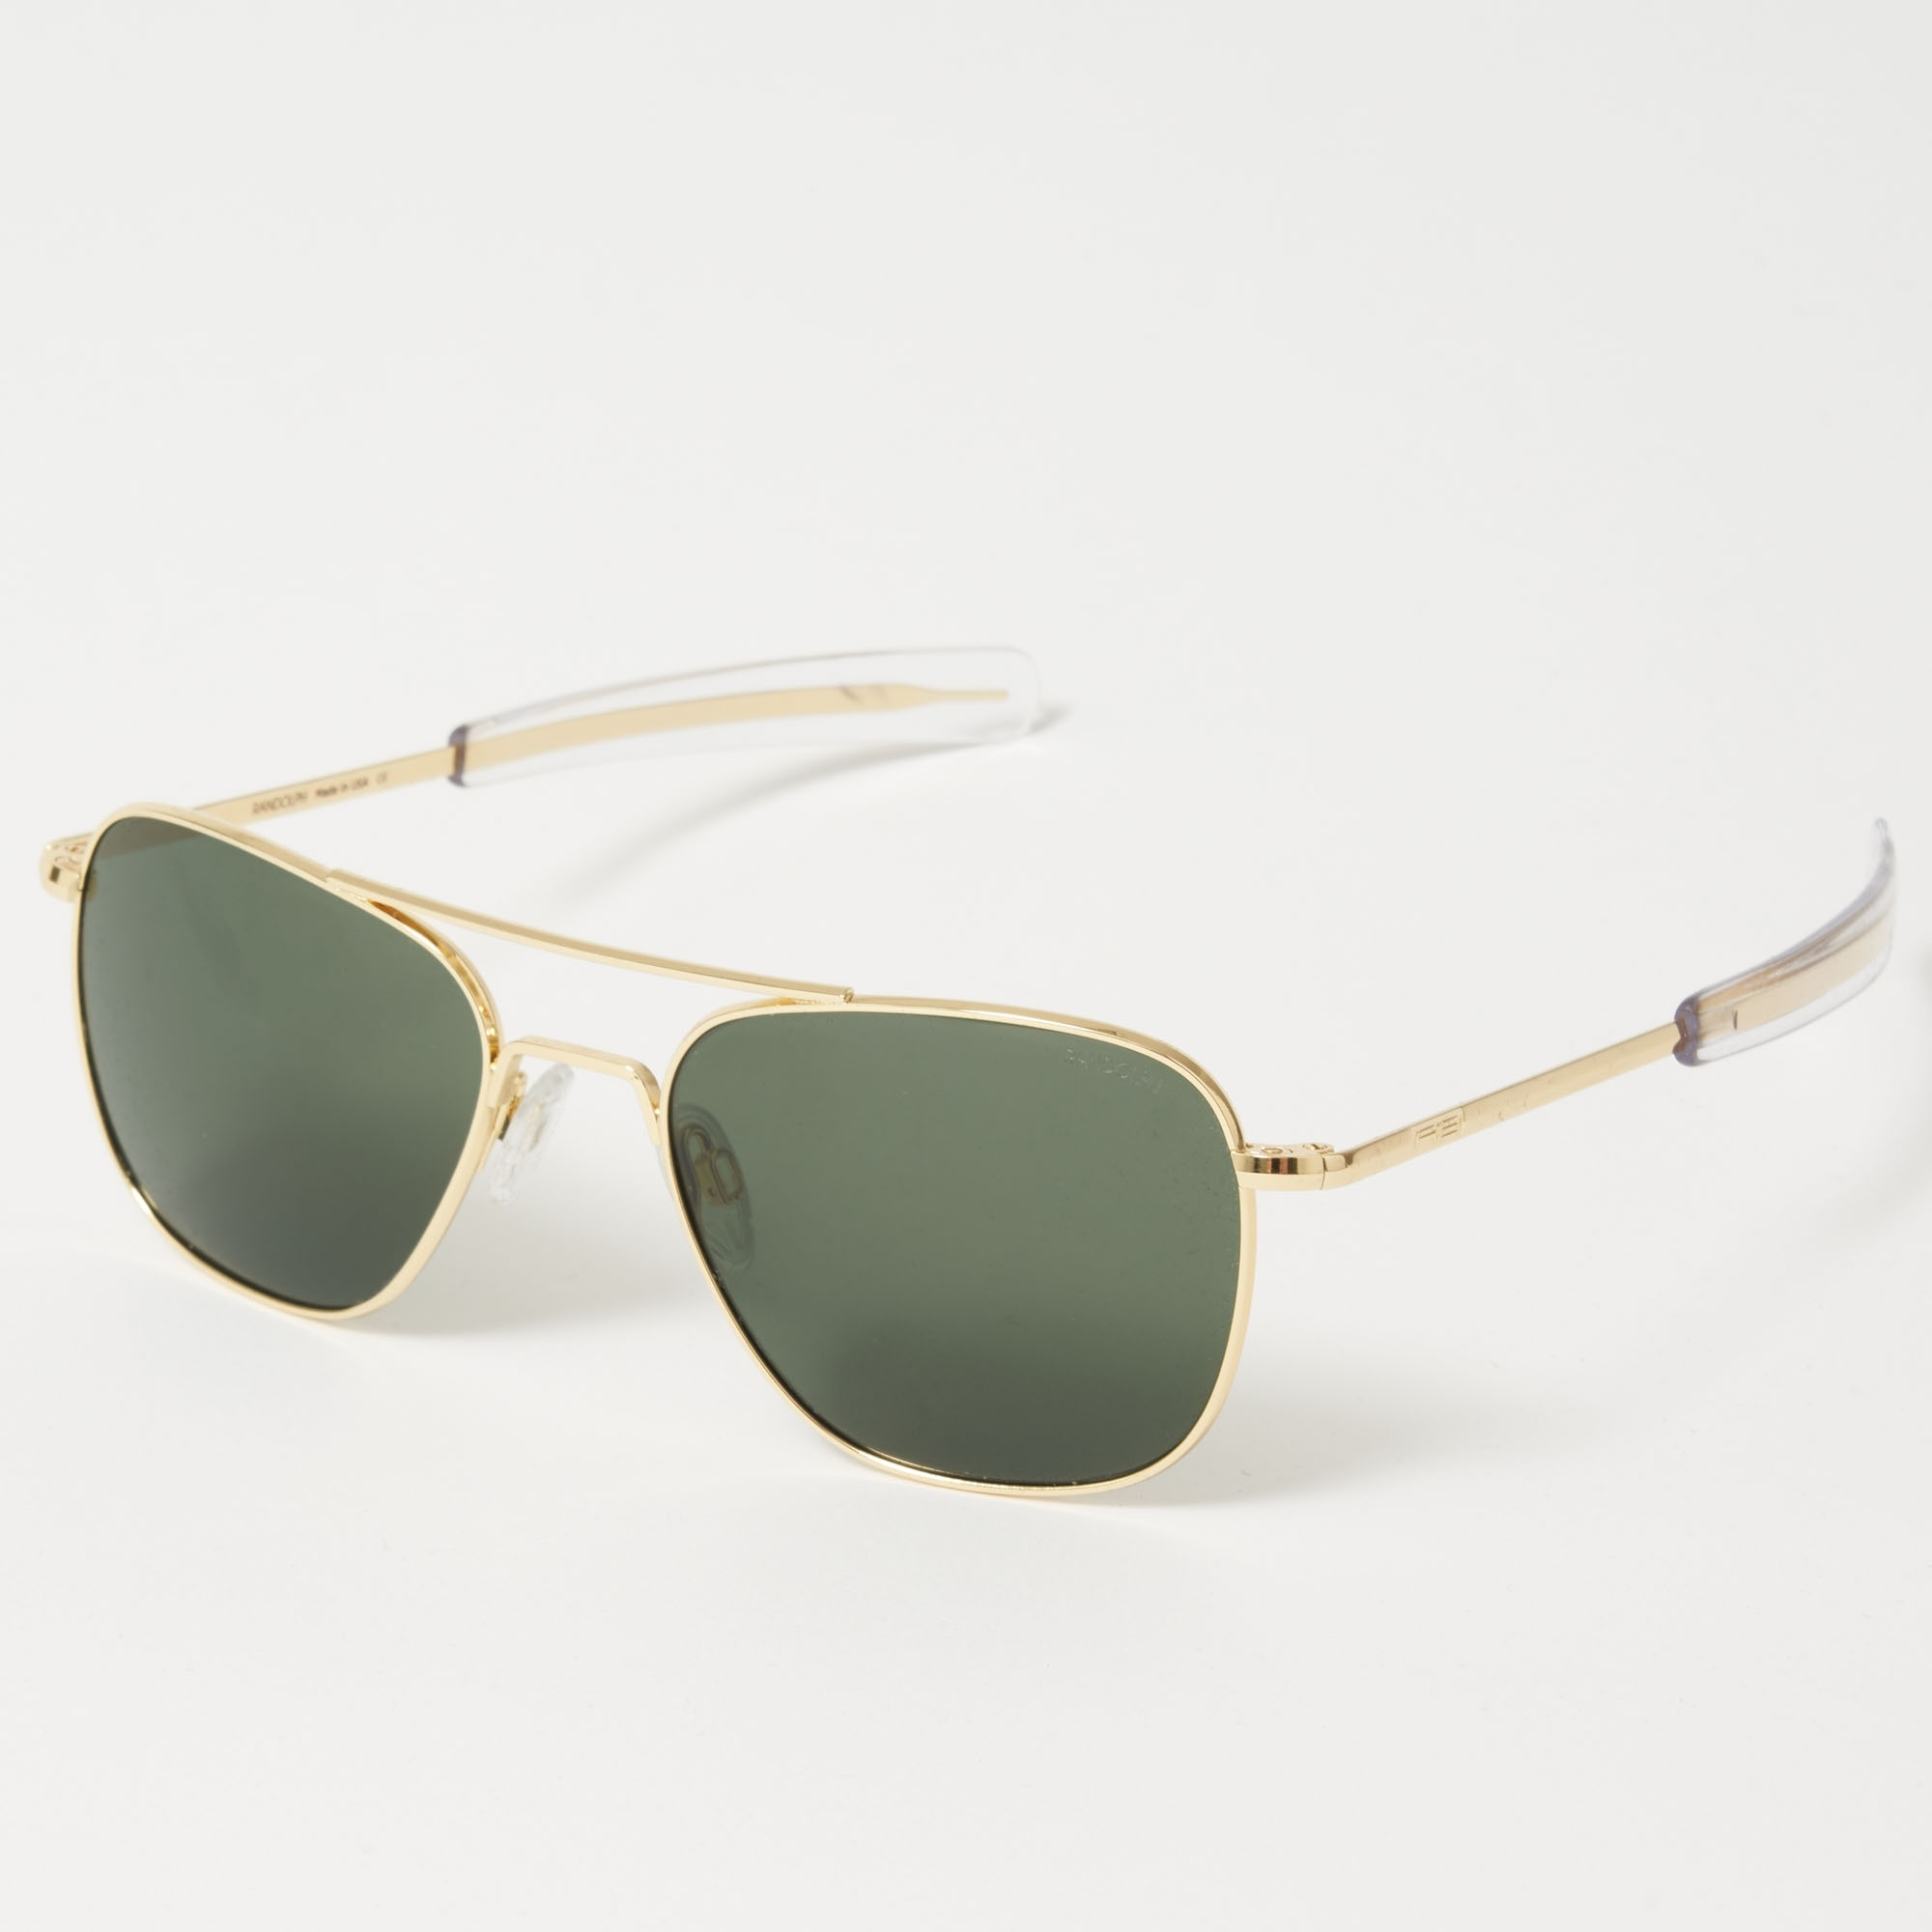 a0a4a41e90e Aviator Sunglasses 55mm - Gold 23K